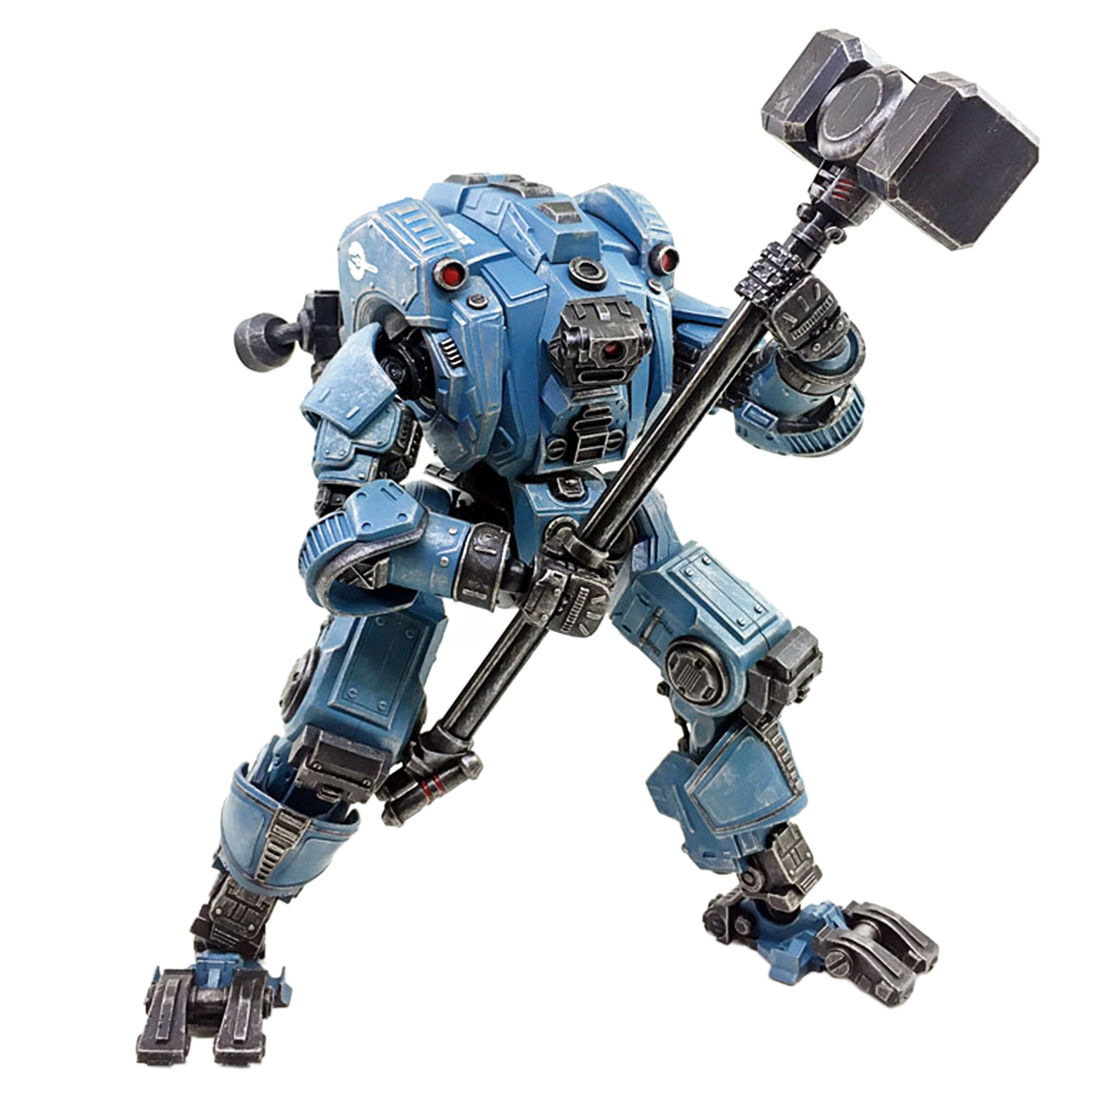 30cm Mecha Model Pangu DIY 3D Assembly Handwork Removable Soldier Model Action Figures Toy  2019 New Arrival30cm Mecha Model Pangu DIY 3D Assembly Handwork Removable Soldier Model Action Figures Toy  2019 New Arrival